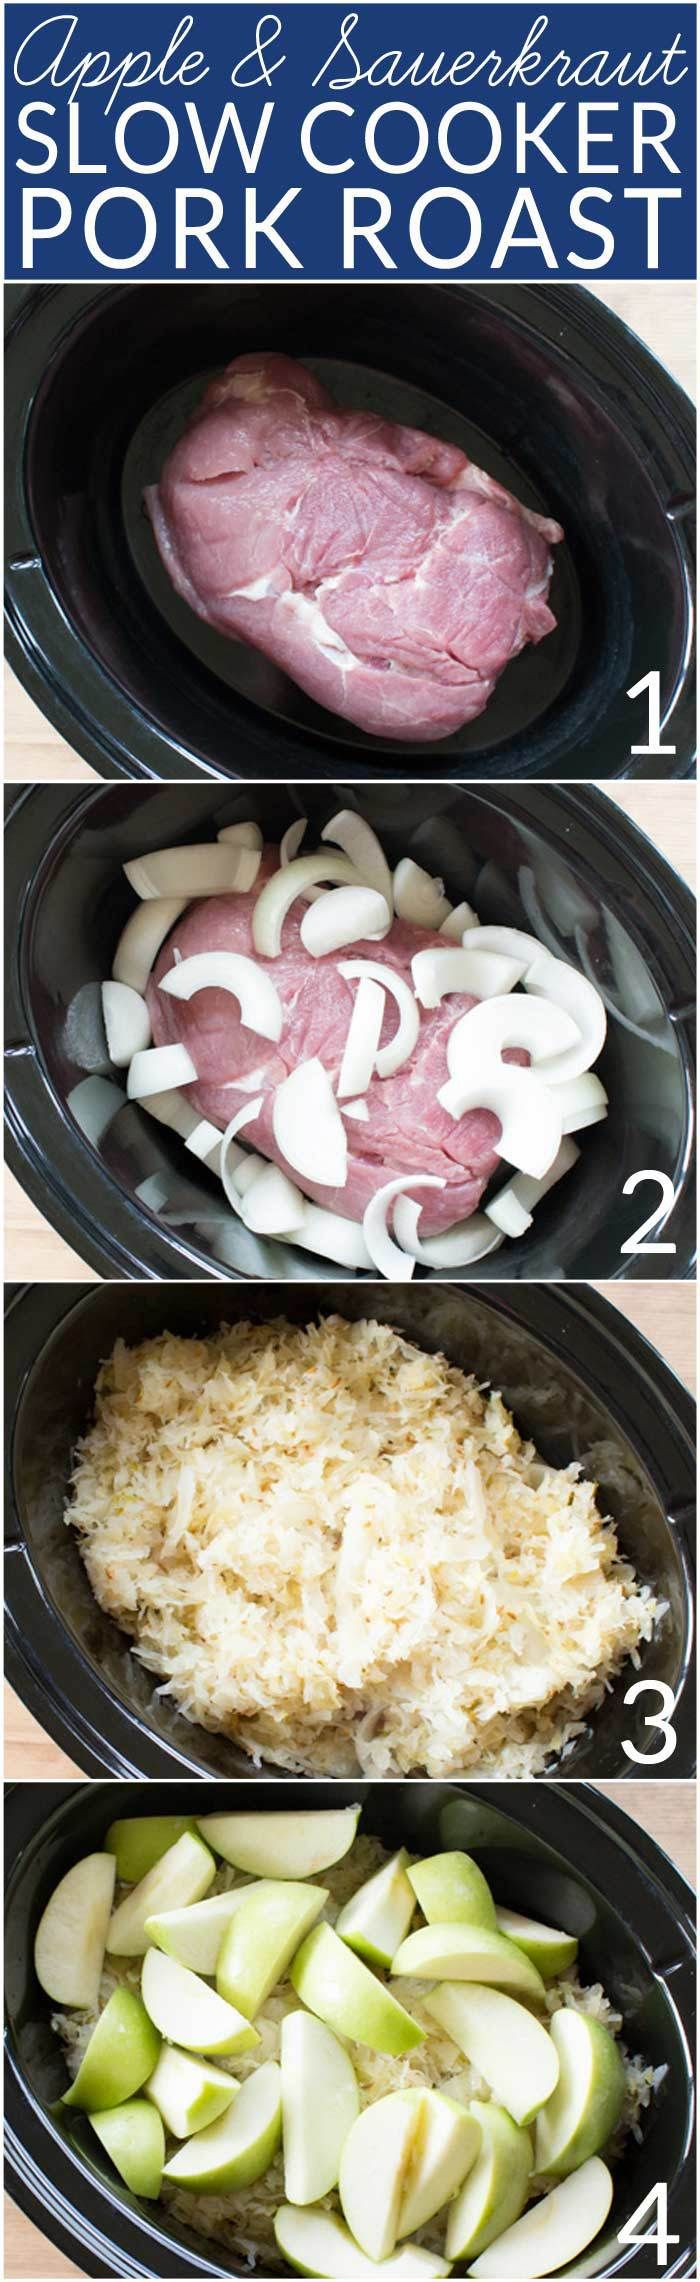 This easy recipe combines apples, pork roast and sauerkraut in the crock pot for a tasty dinner that takes just minutes to prepare. My family loves it for the t